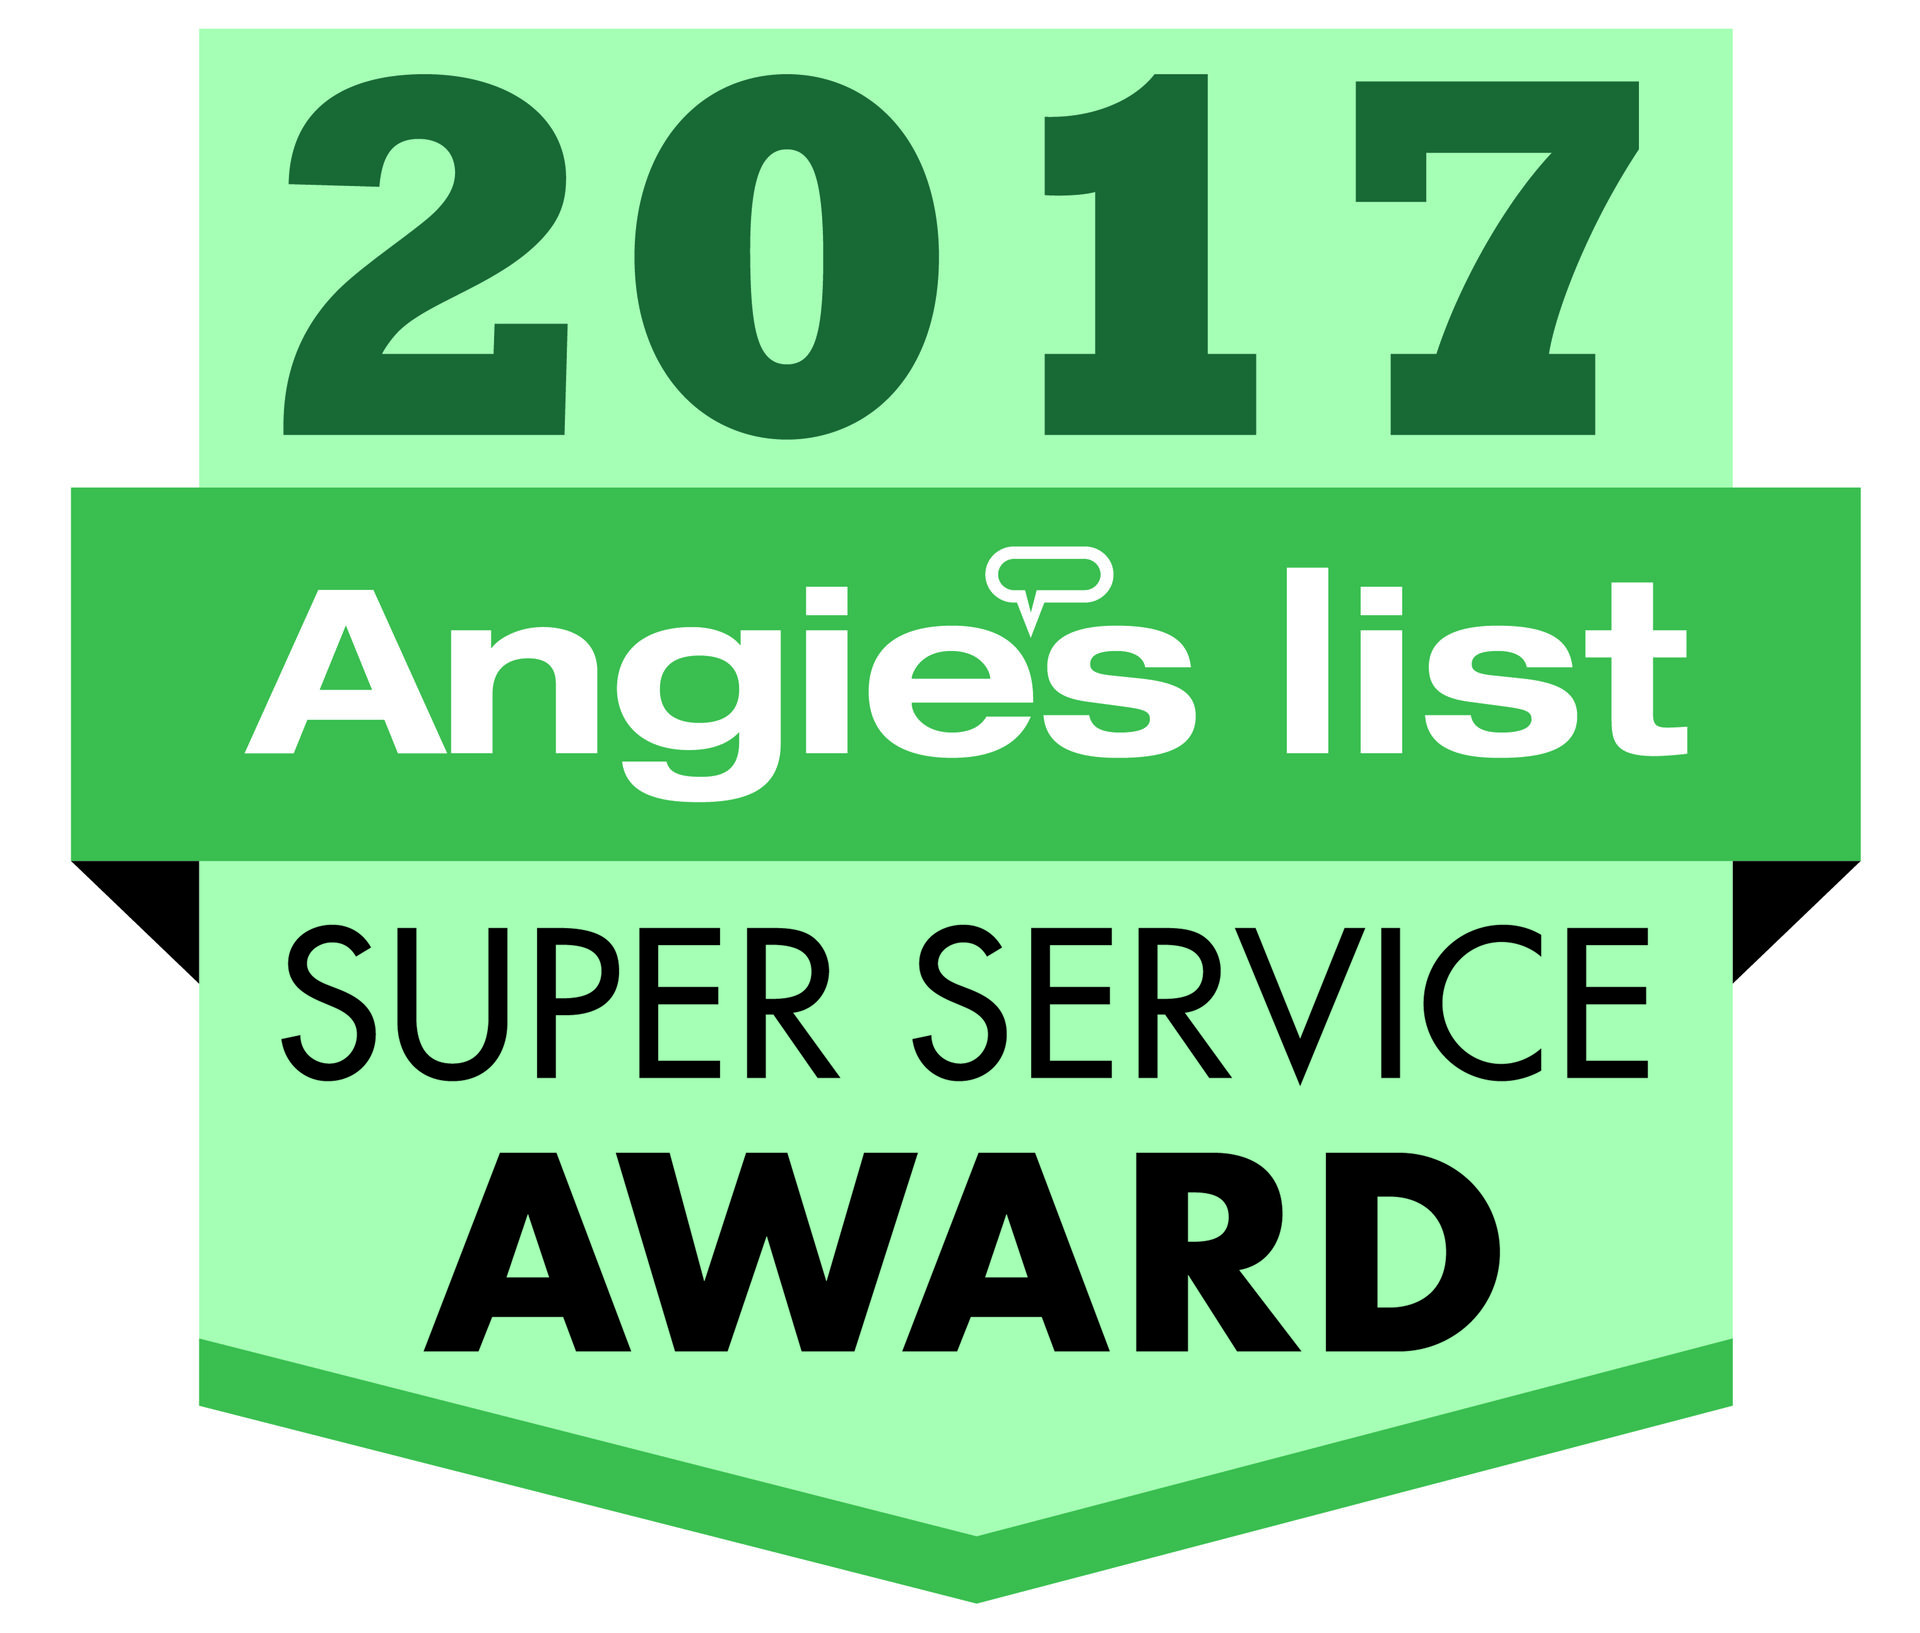 ken-rich conrete lifting is an angies list super-service award winner